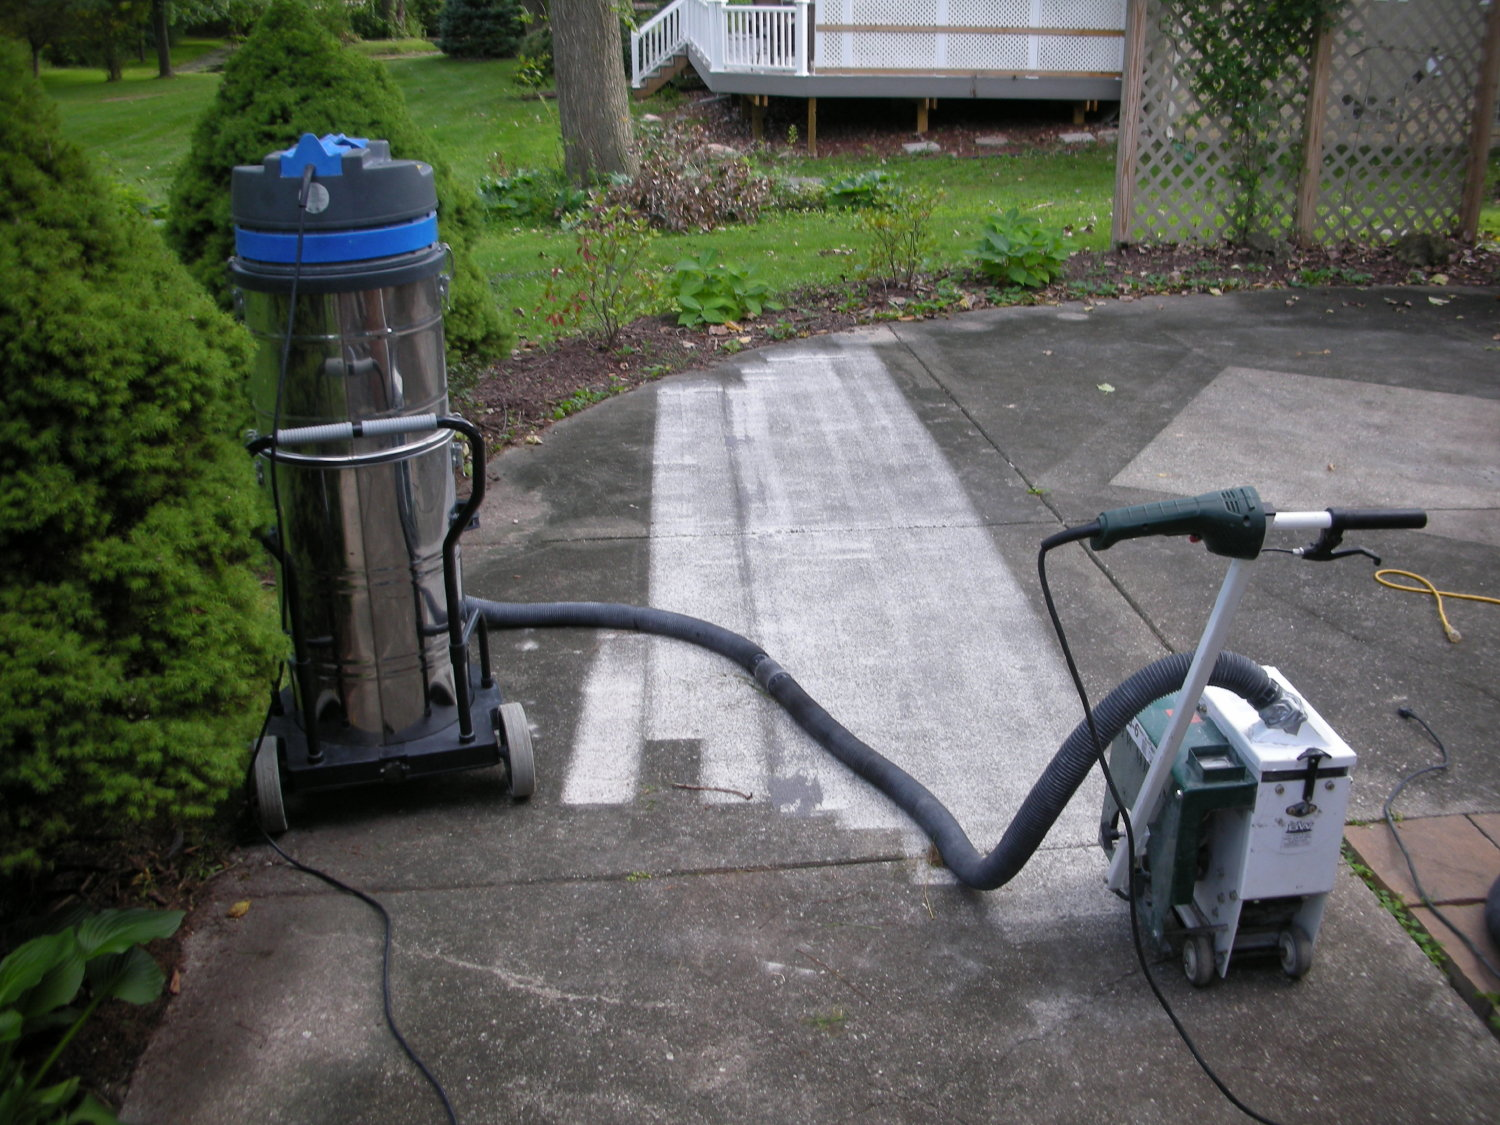 Shot-blasting was required to clean this concrete patio (before resurfacing with an overlay) because of the rough texture and longstanding dirt and discoloration.